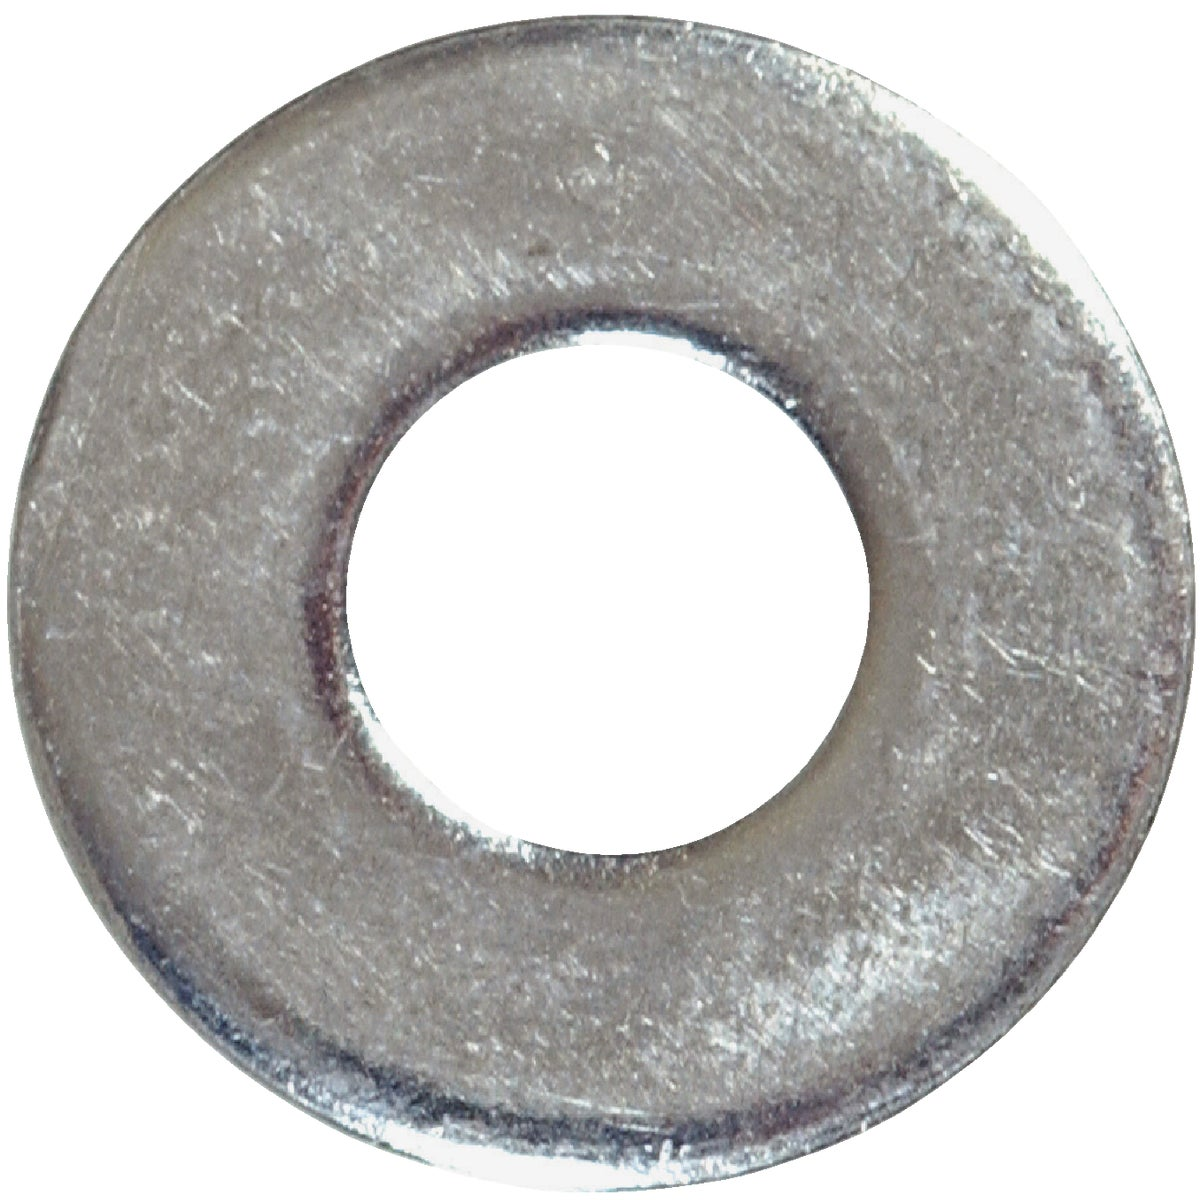 "5LB 1"" USS FLT WASHER - 270033 by Hillman Fastener"